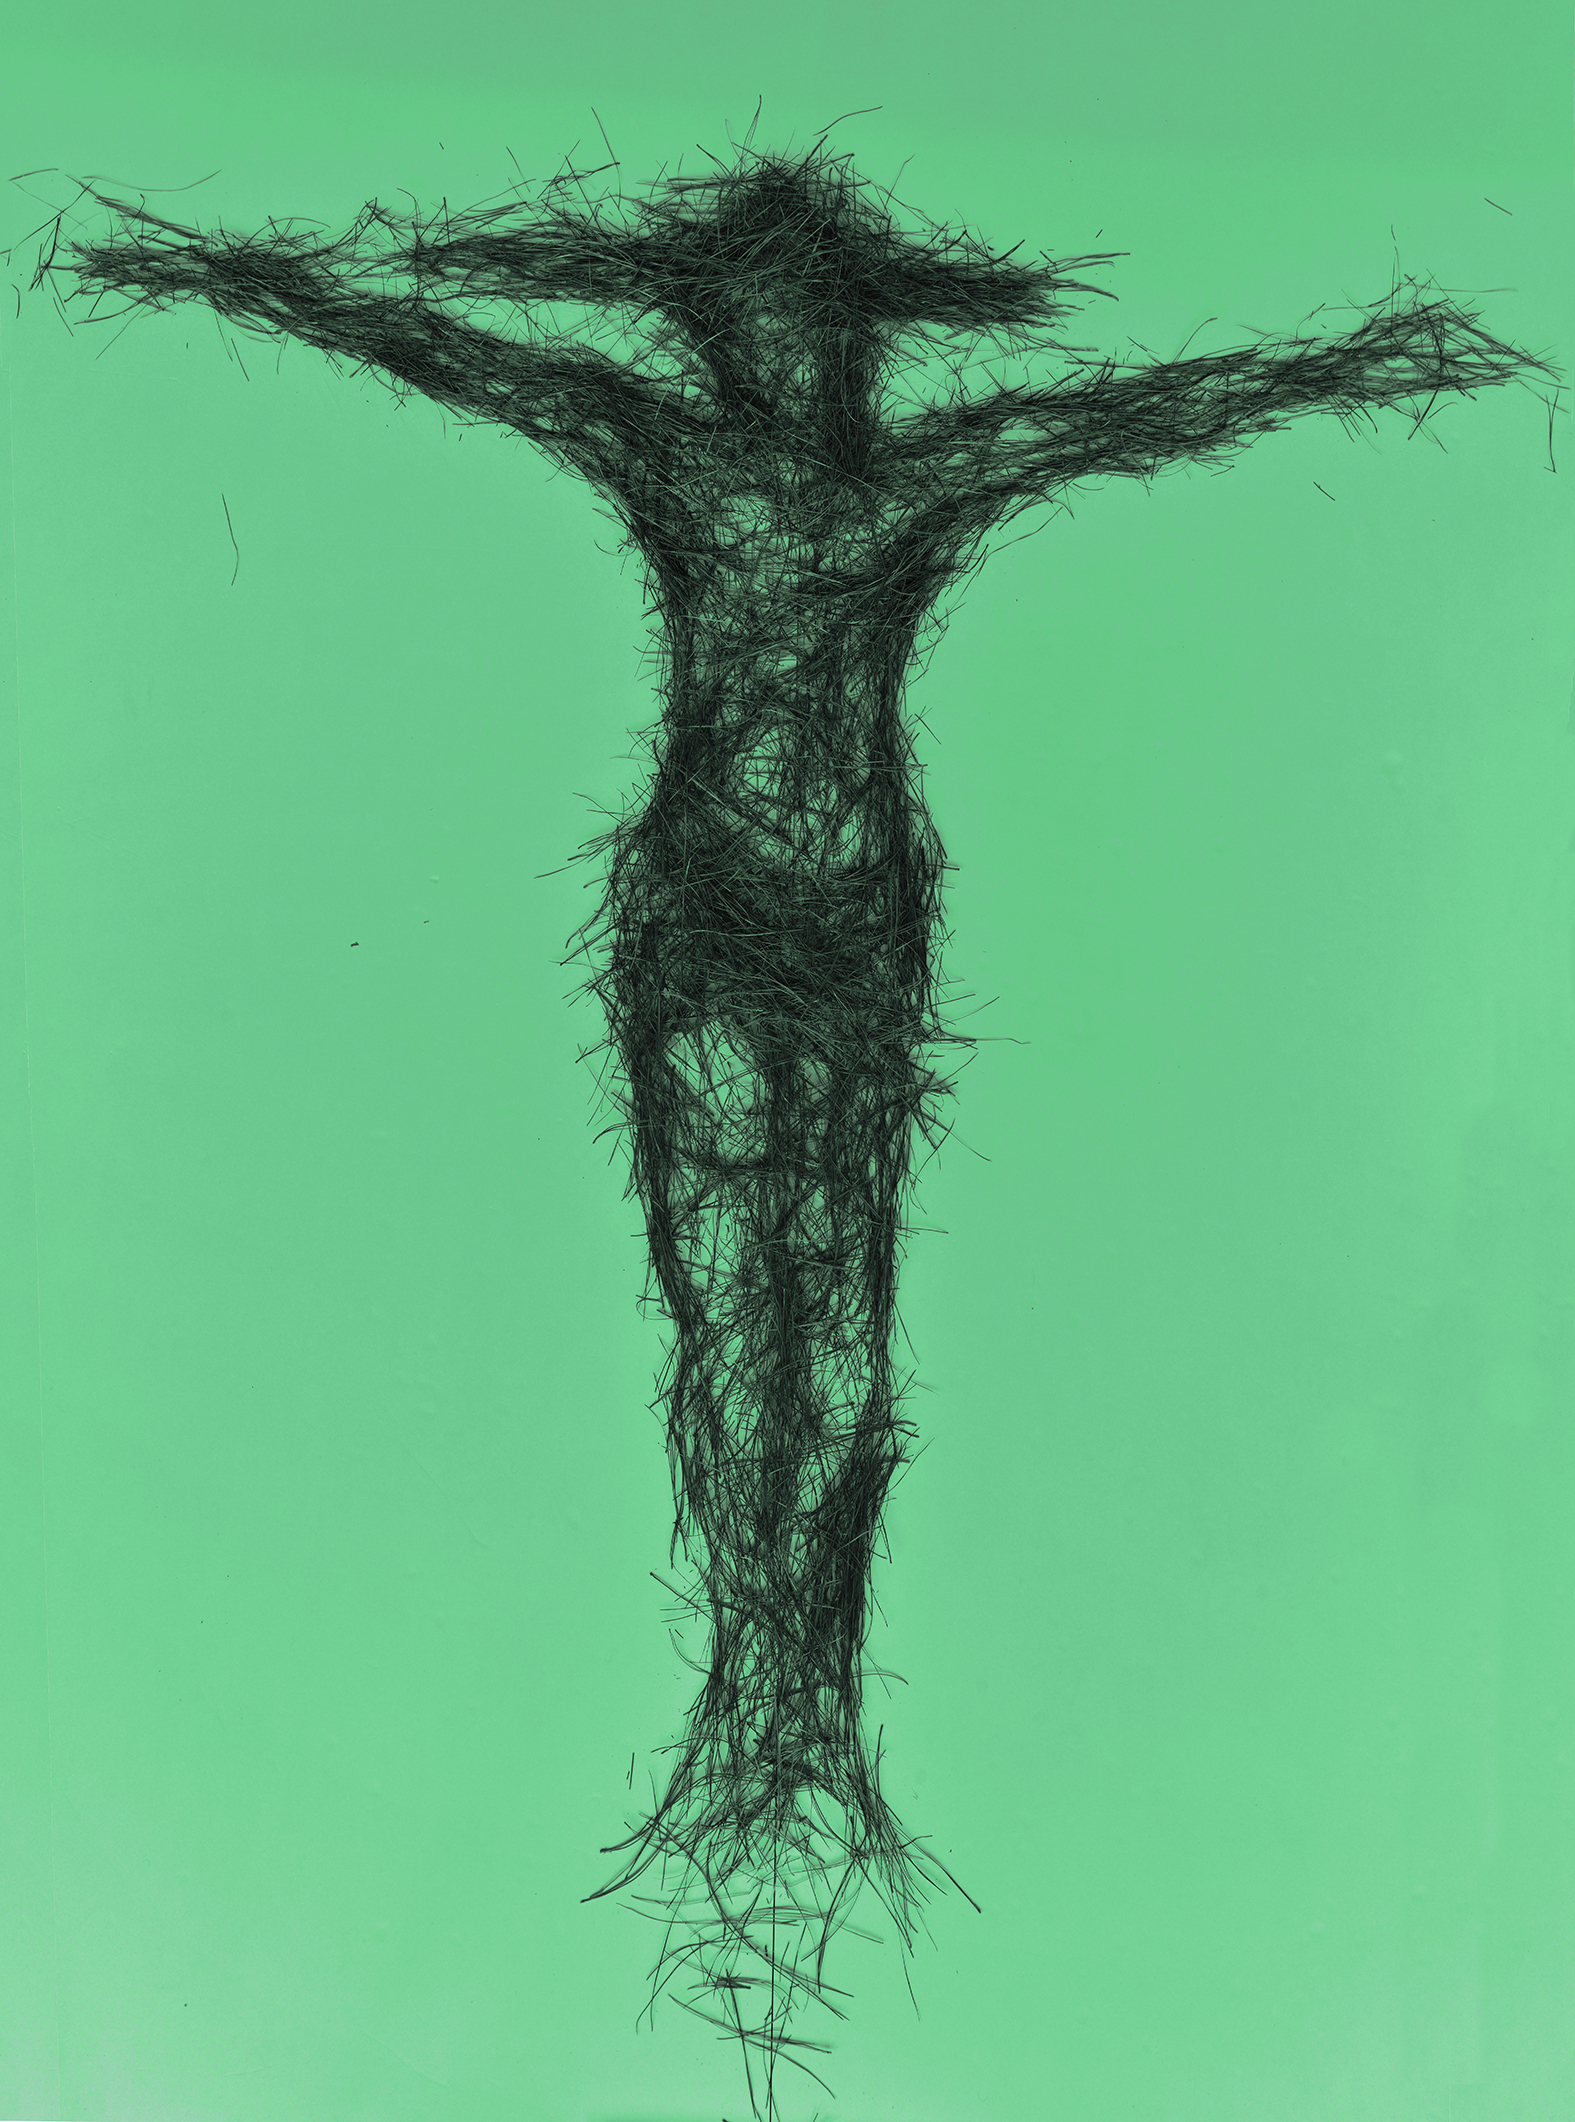 Cruxifixion of Jesus, pine needle drawing, 2016. Digital print